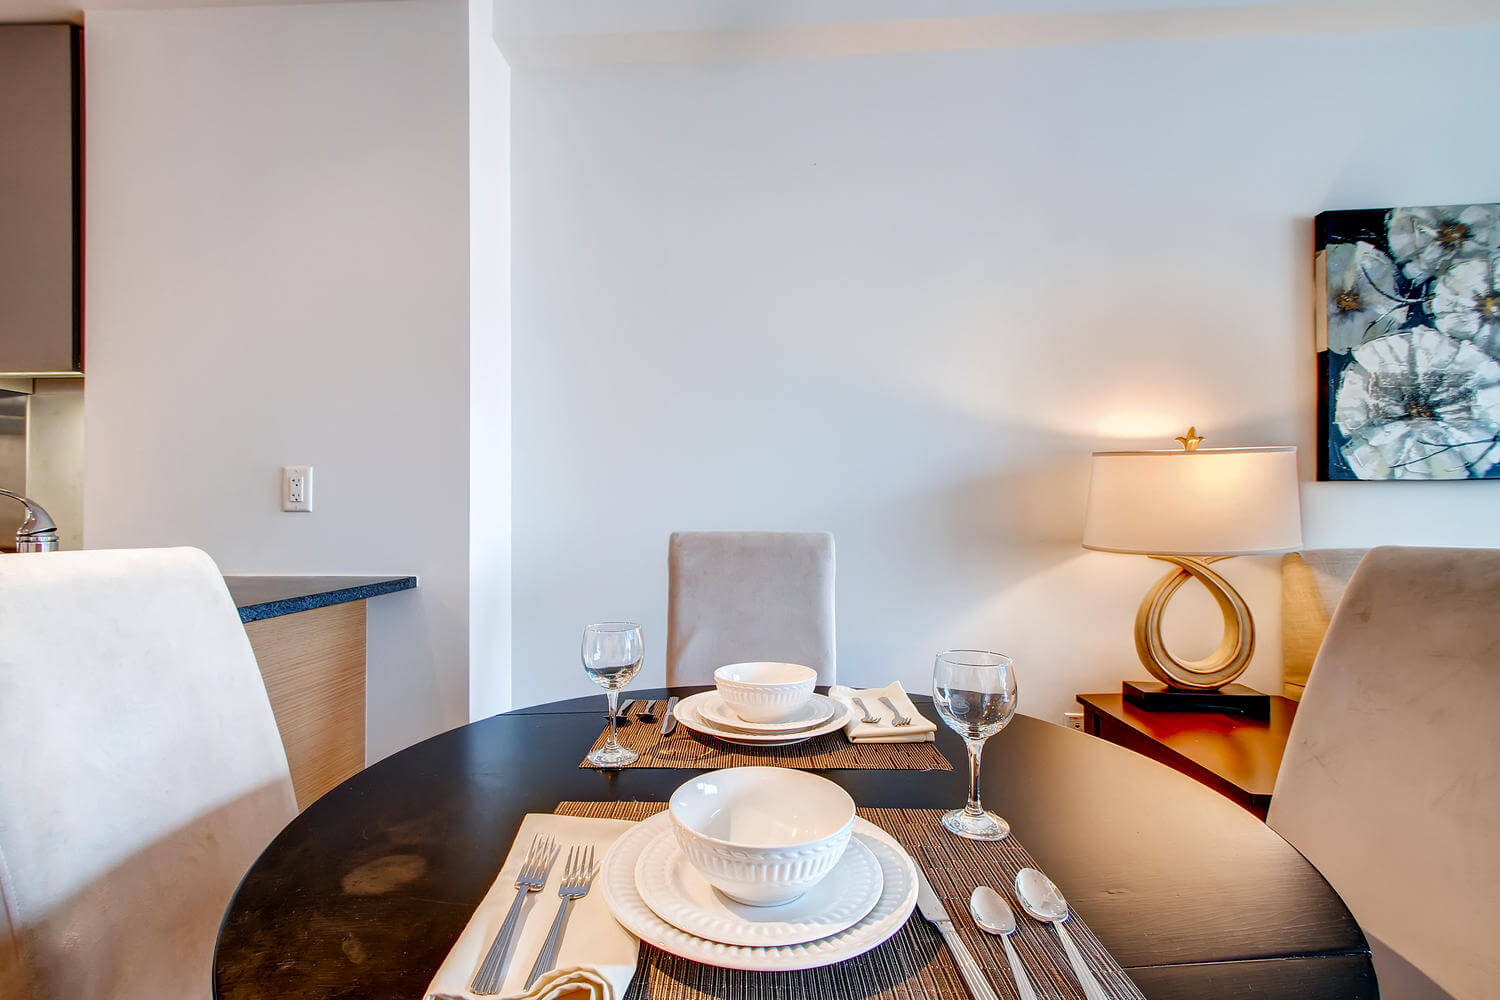 furnished 1 bedroom apartment for rent in cambridge boston area